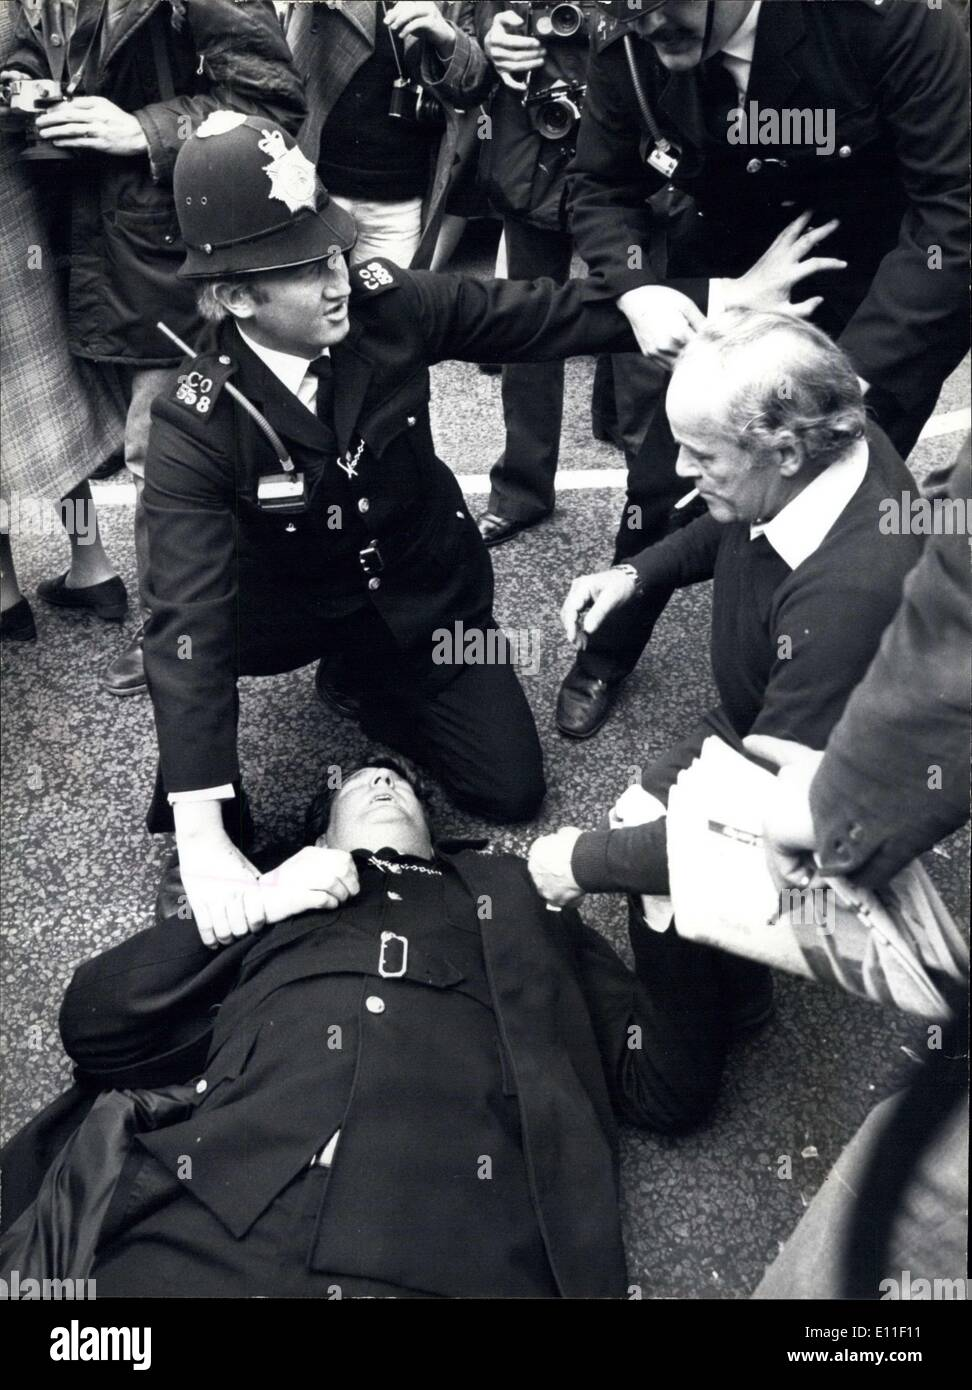 Jun. 23, 1977 - Policeman Badly Injured During Fighting Outside The Grunwick Factory: During the fighting which took place this - Stock Image